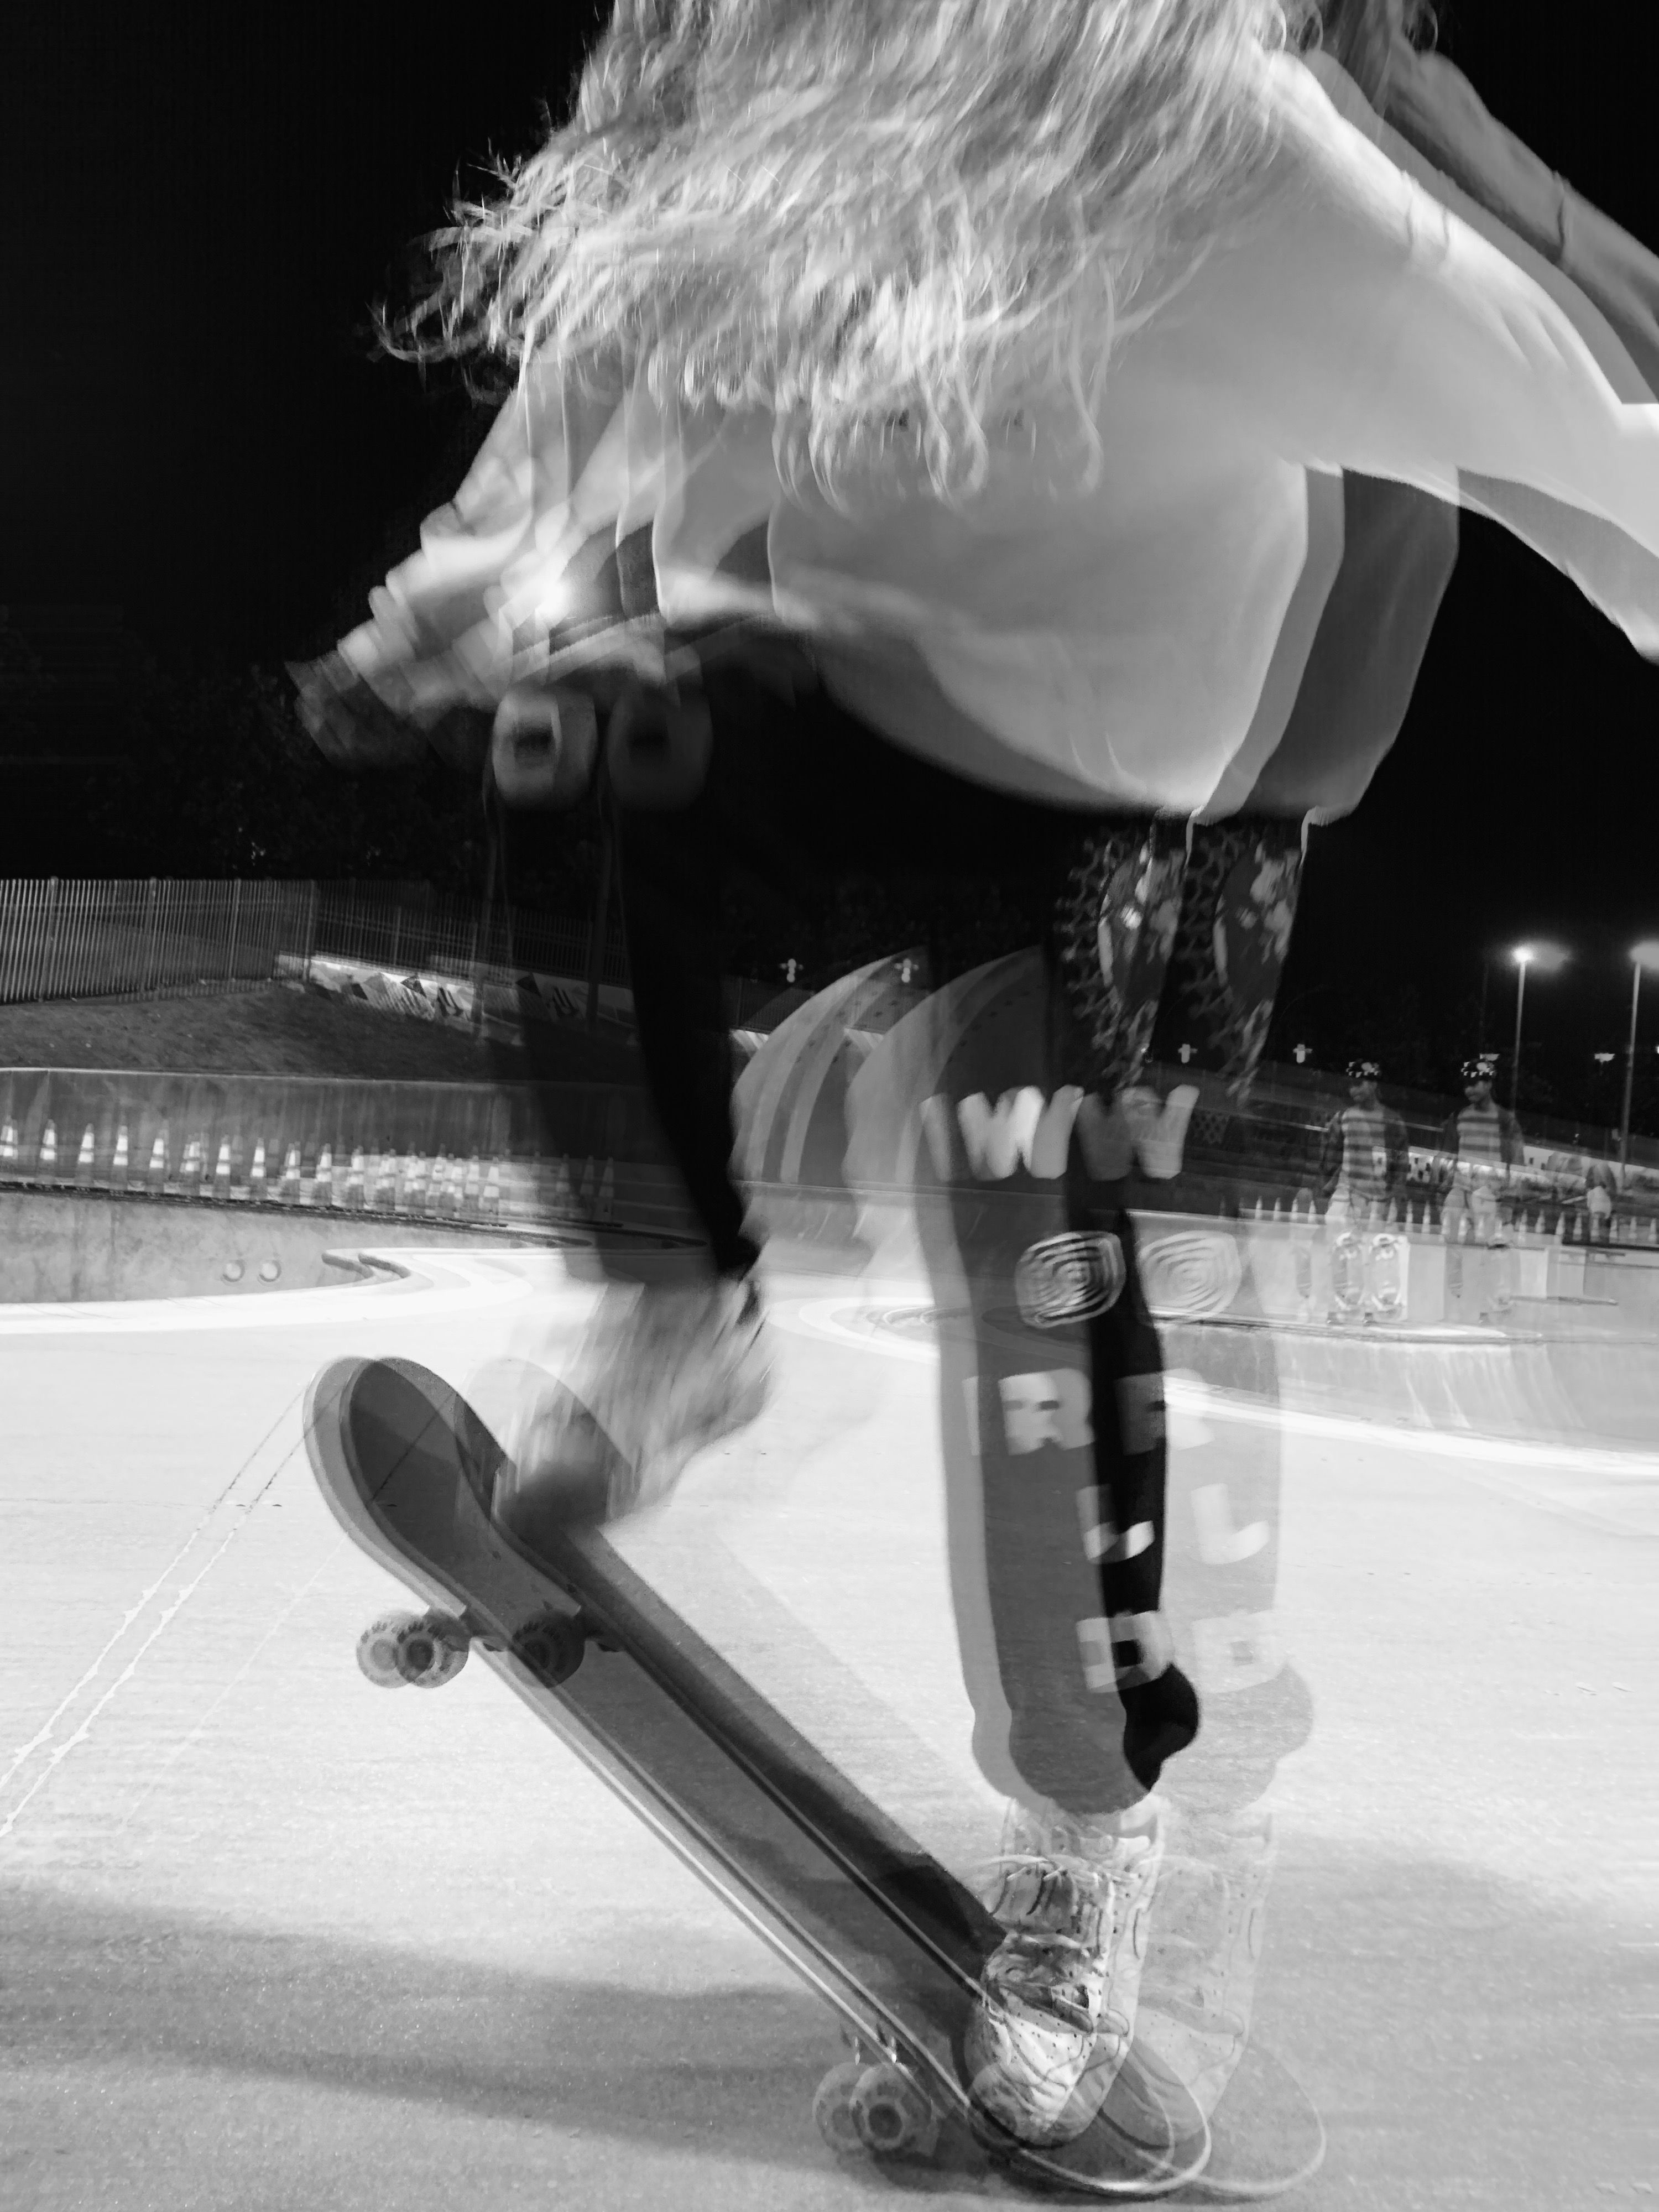 Skateboard picture aesthetic in 2020 Skateboard pictures